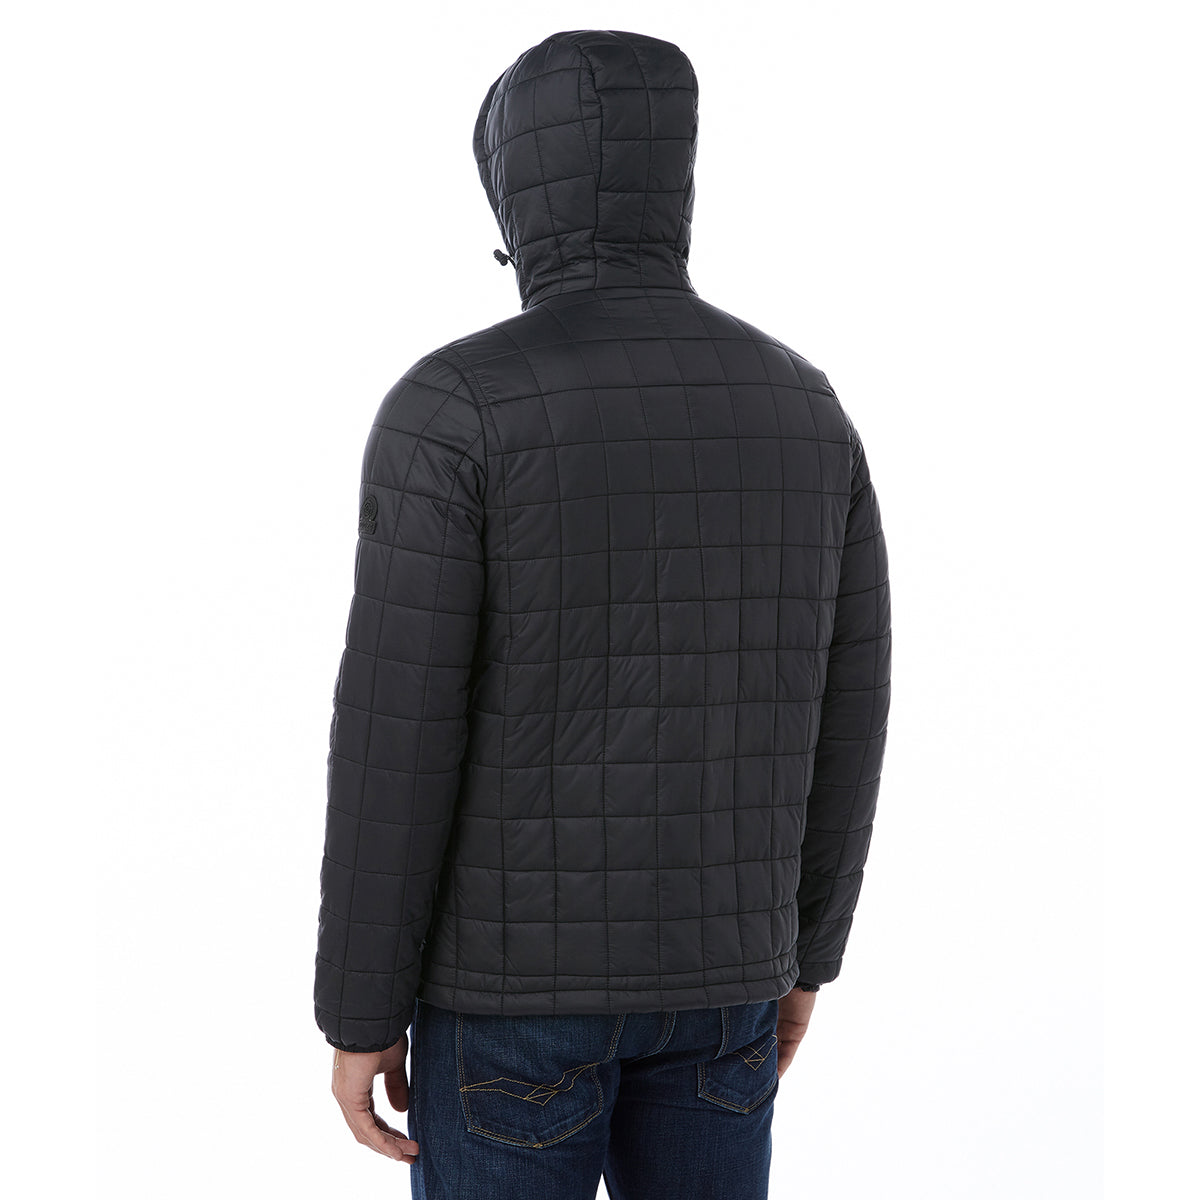 Loxley Mens TCZ Thermal Jacket - Black image 4